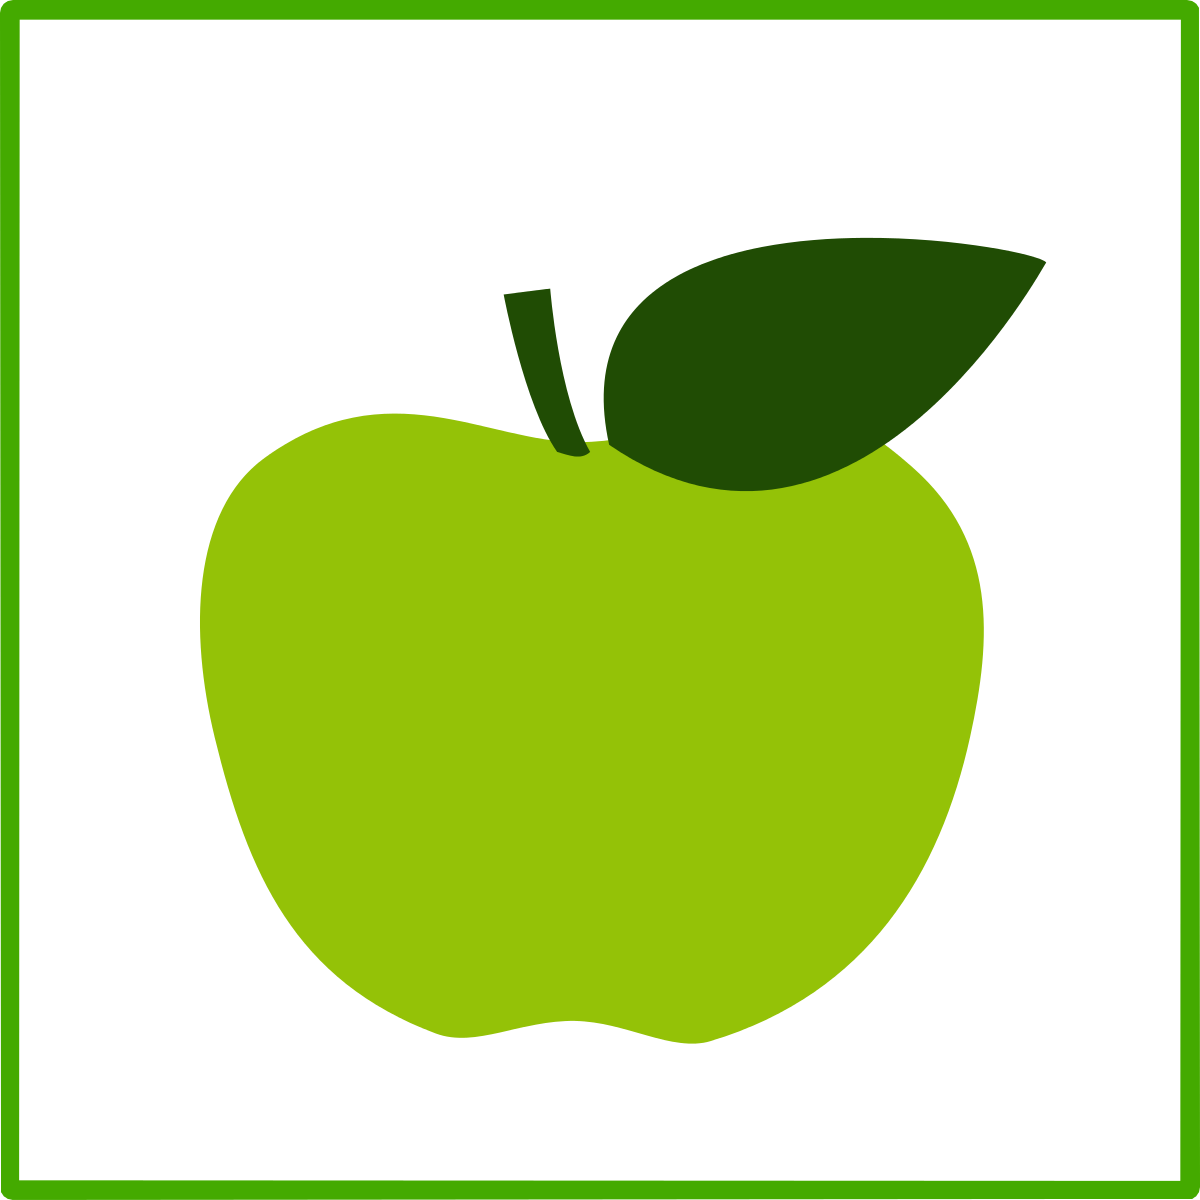 Painted apple clipart graphic stock Green apple clipart png graphic stock